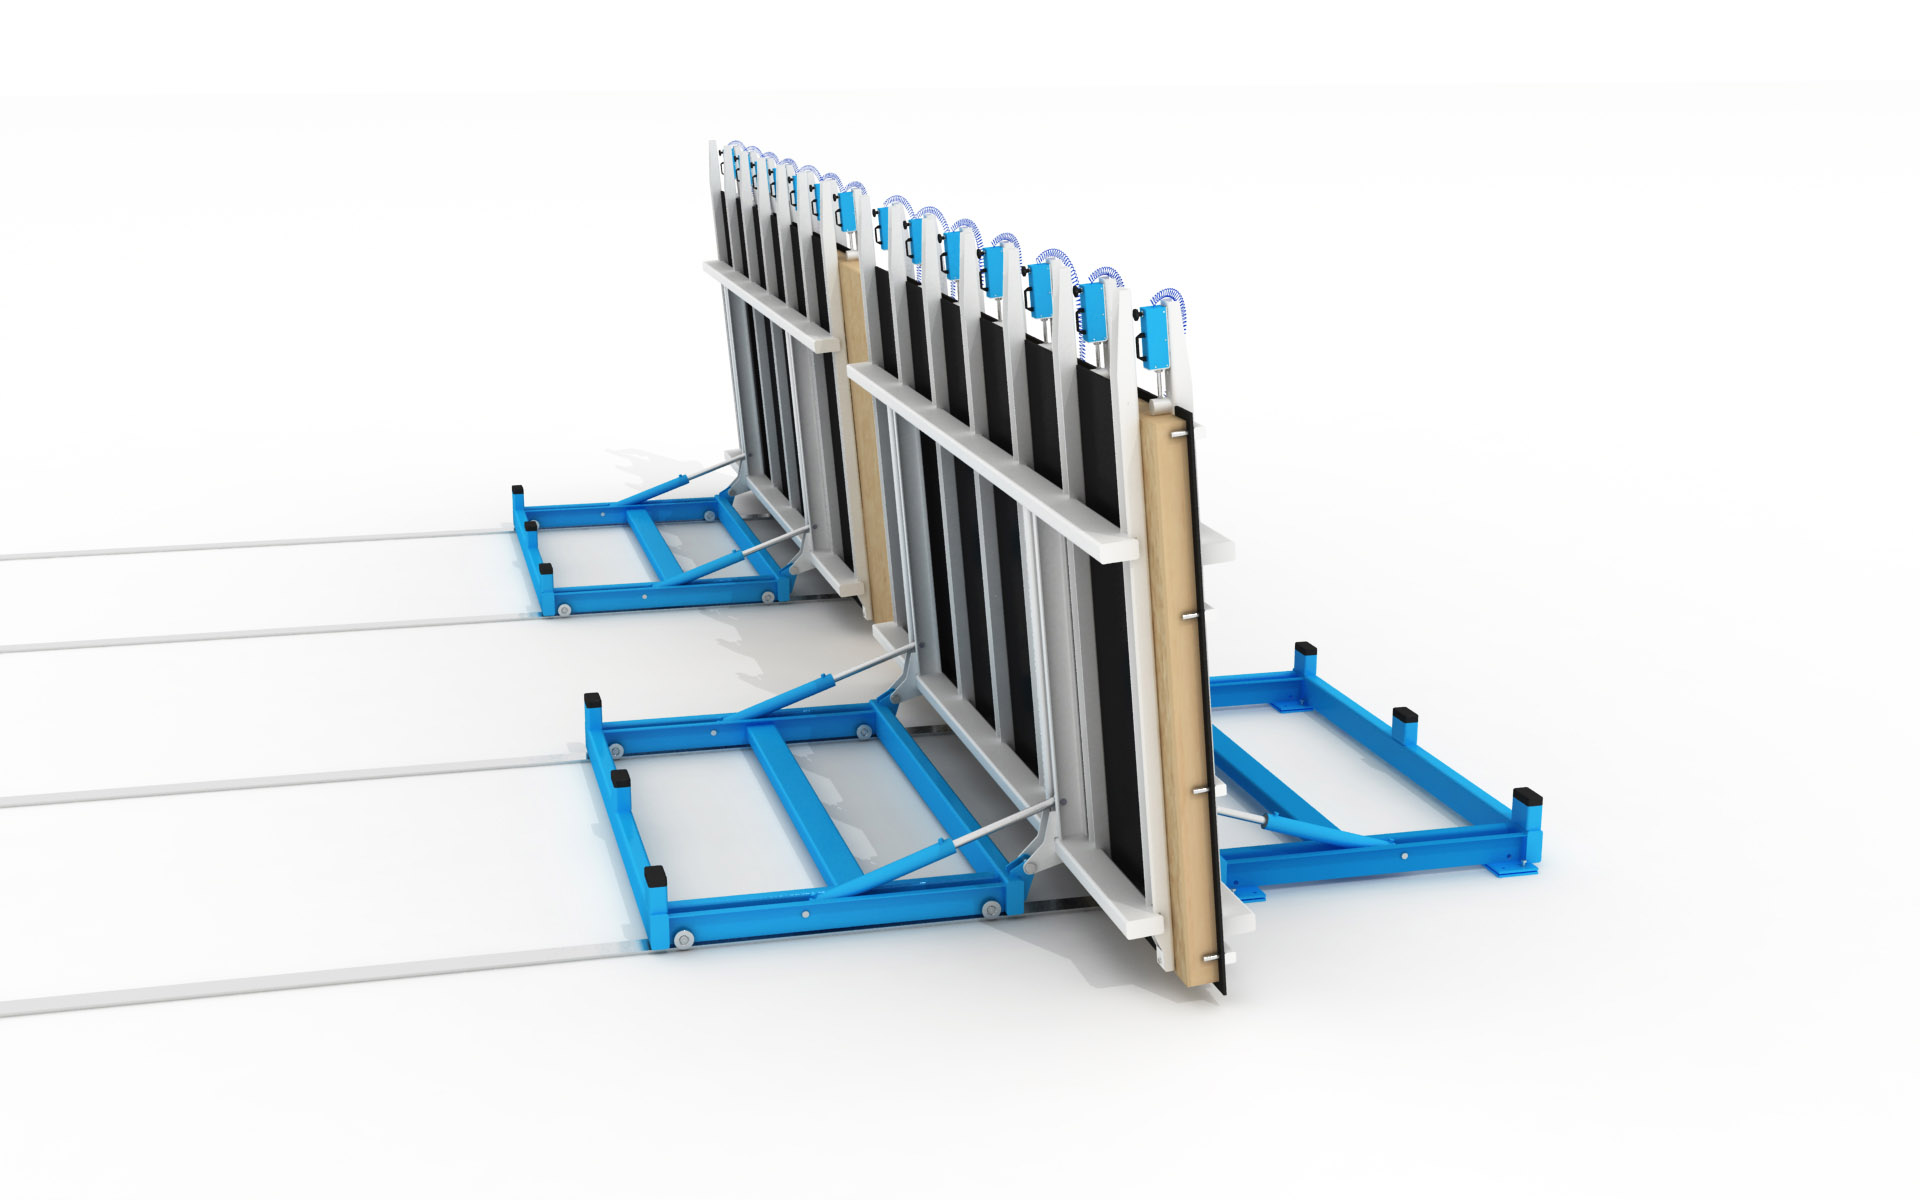 WING Hydaulic Butterfly Lift Table at Apex of Panel Flipping Cycle